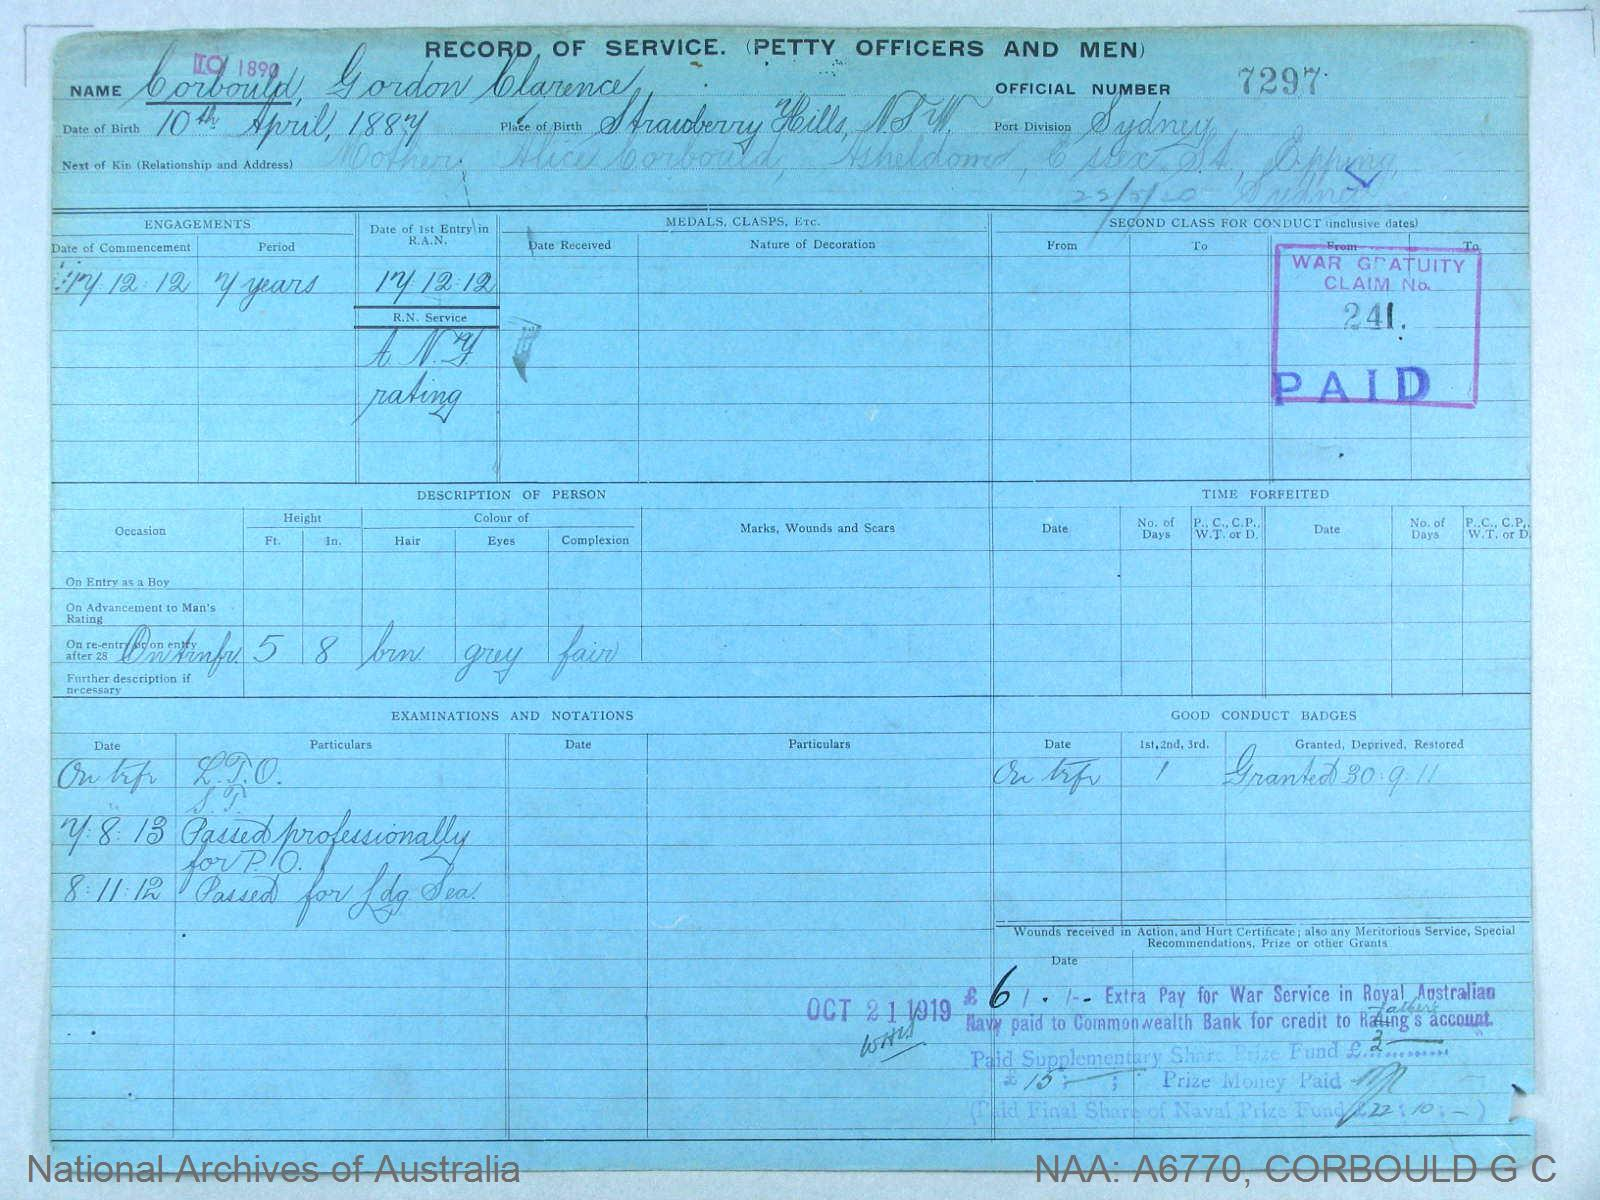 CORBOULD GORDON CLARENCE : Service Number - 7297 : Date of birth - 10 Apr 1887 : Place of birth - STRAWBERRY HILLS NSW : Place of enlistment - SYDNEY : Next of Kin - CORBOULD ALICE